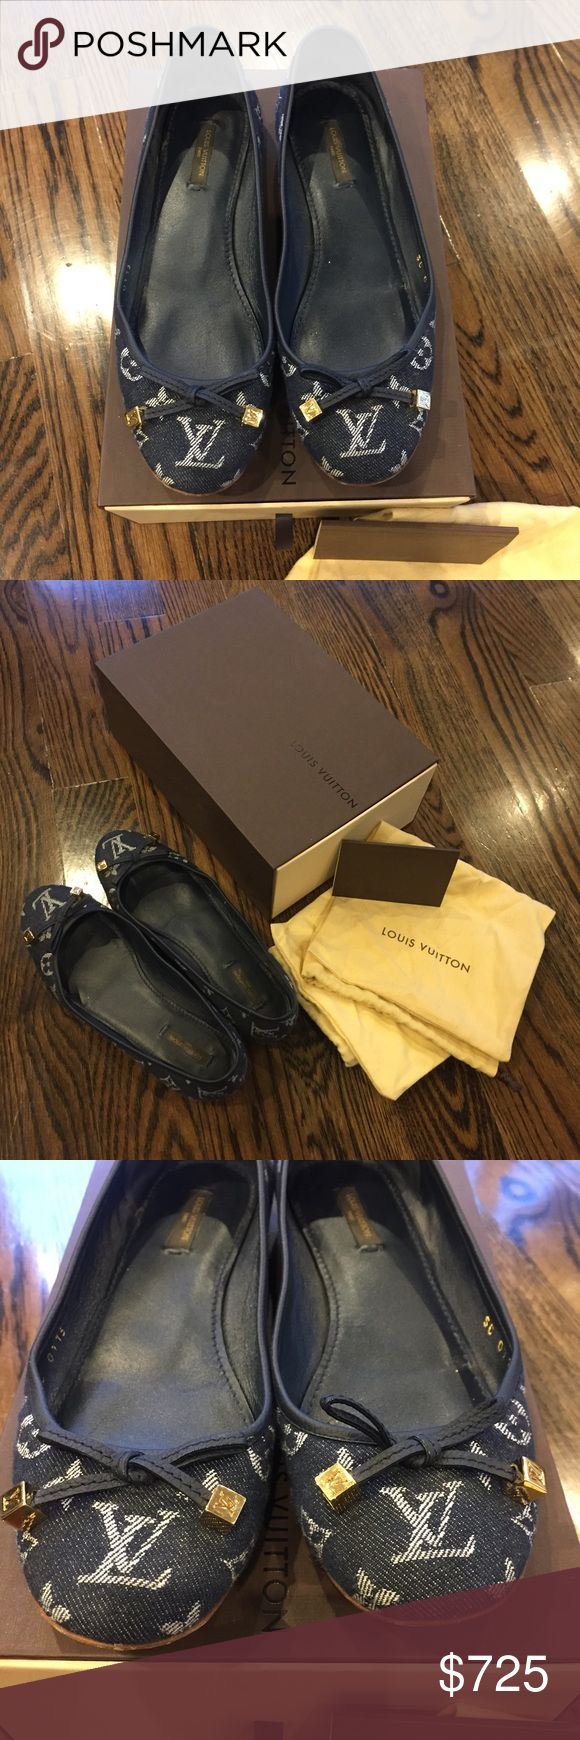 Louis Vuitton Monogram Denim ballet flat Like new condition. No flaws or imperfections. The only wear to the shoes is on the bottoms. Gorgeous LV monogram dice on the ends of the bows. Just amazing!! Original dust bags and box included. Louis Vuitton Shoes Flats & Loafers